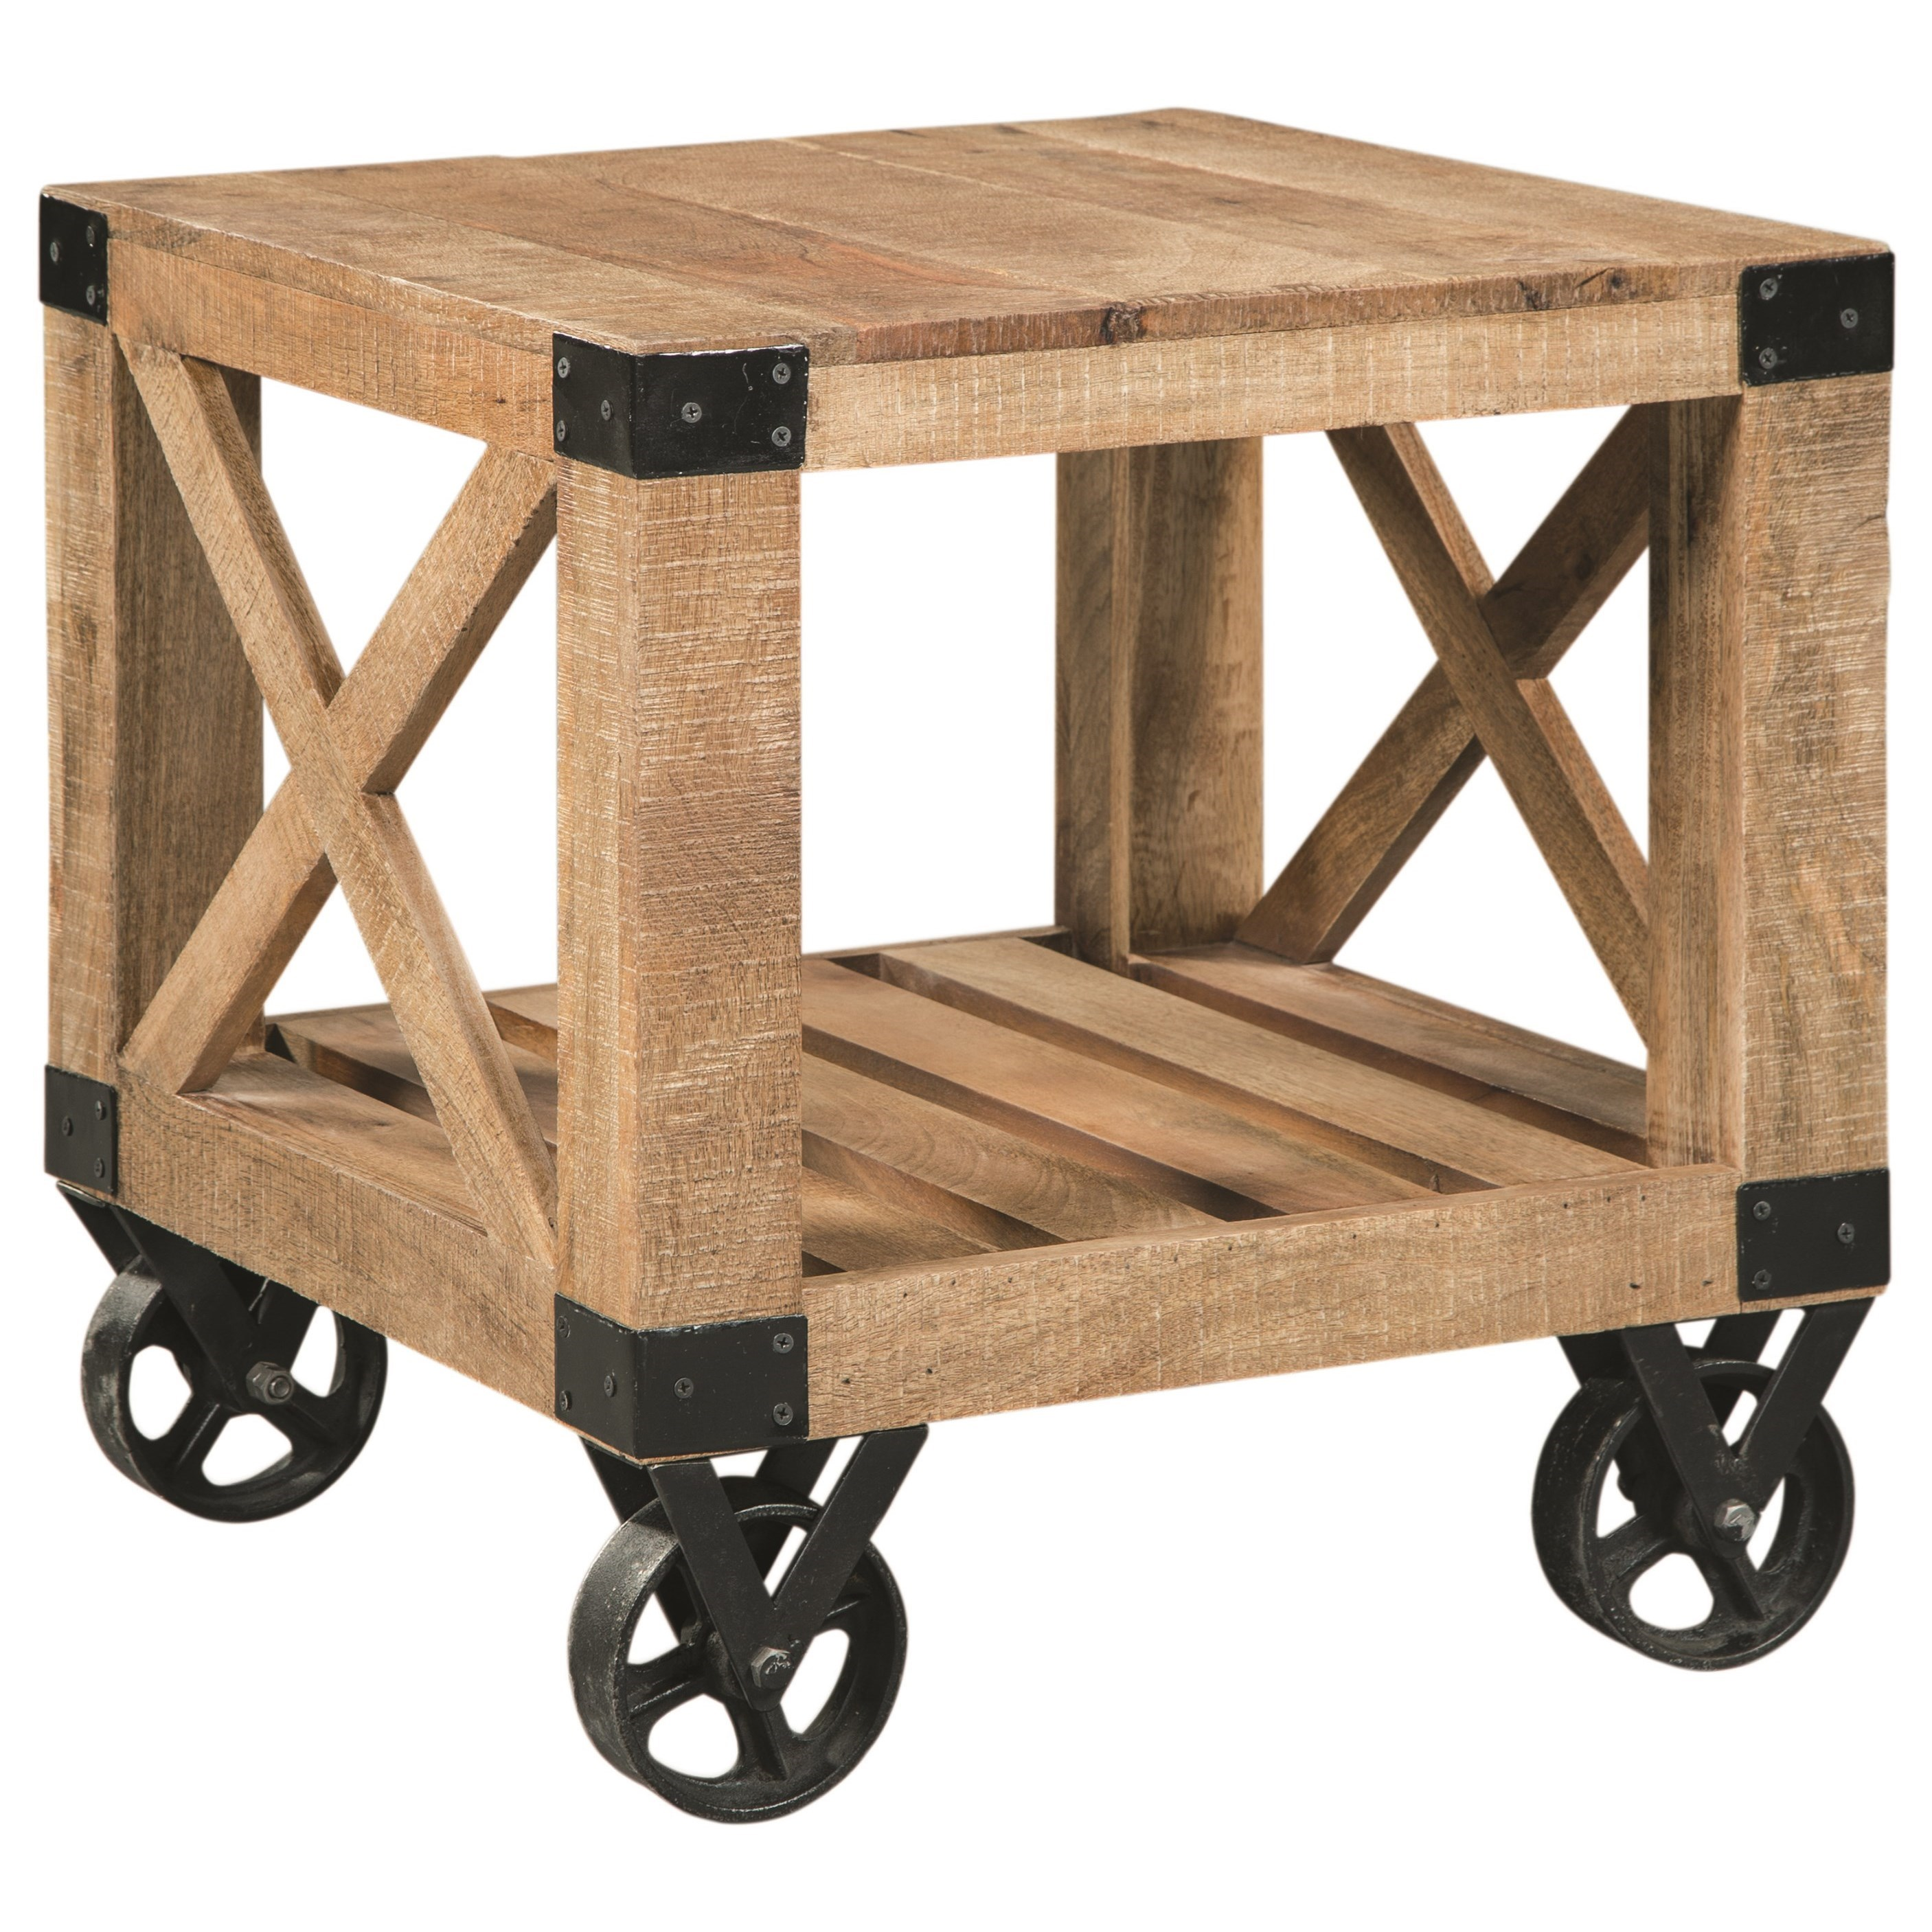 705547 industrial square end table